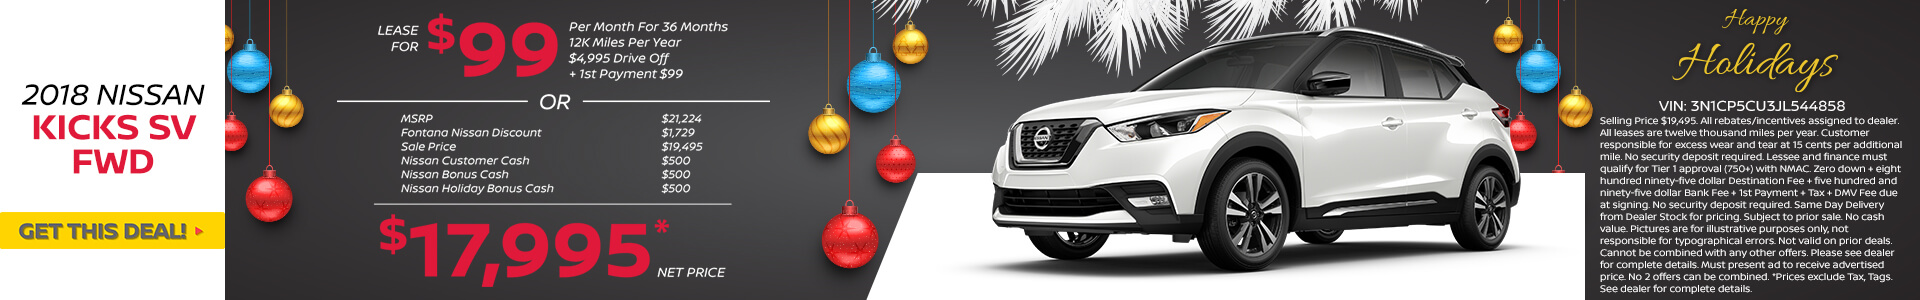 Nissan Kicks $99 Lease or $17,995 Lease